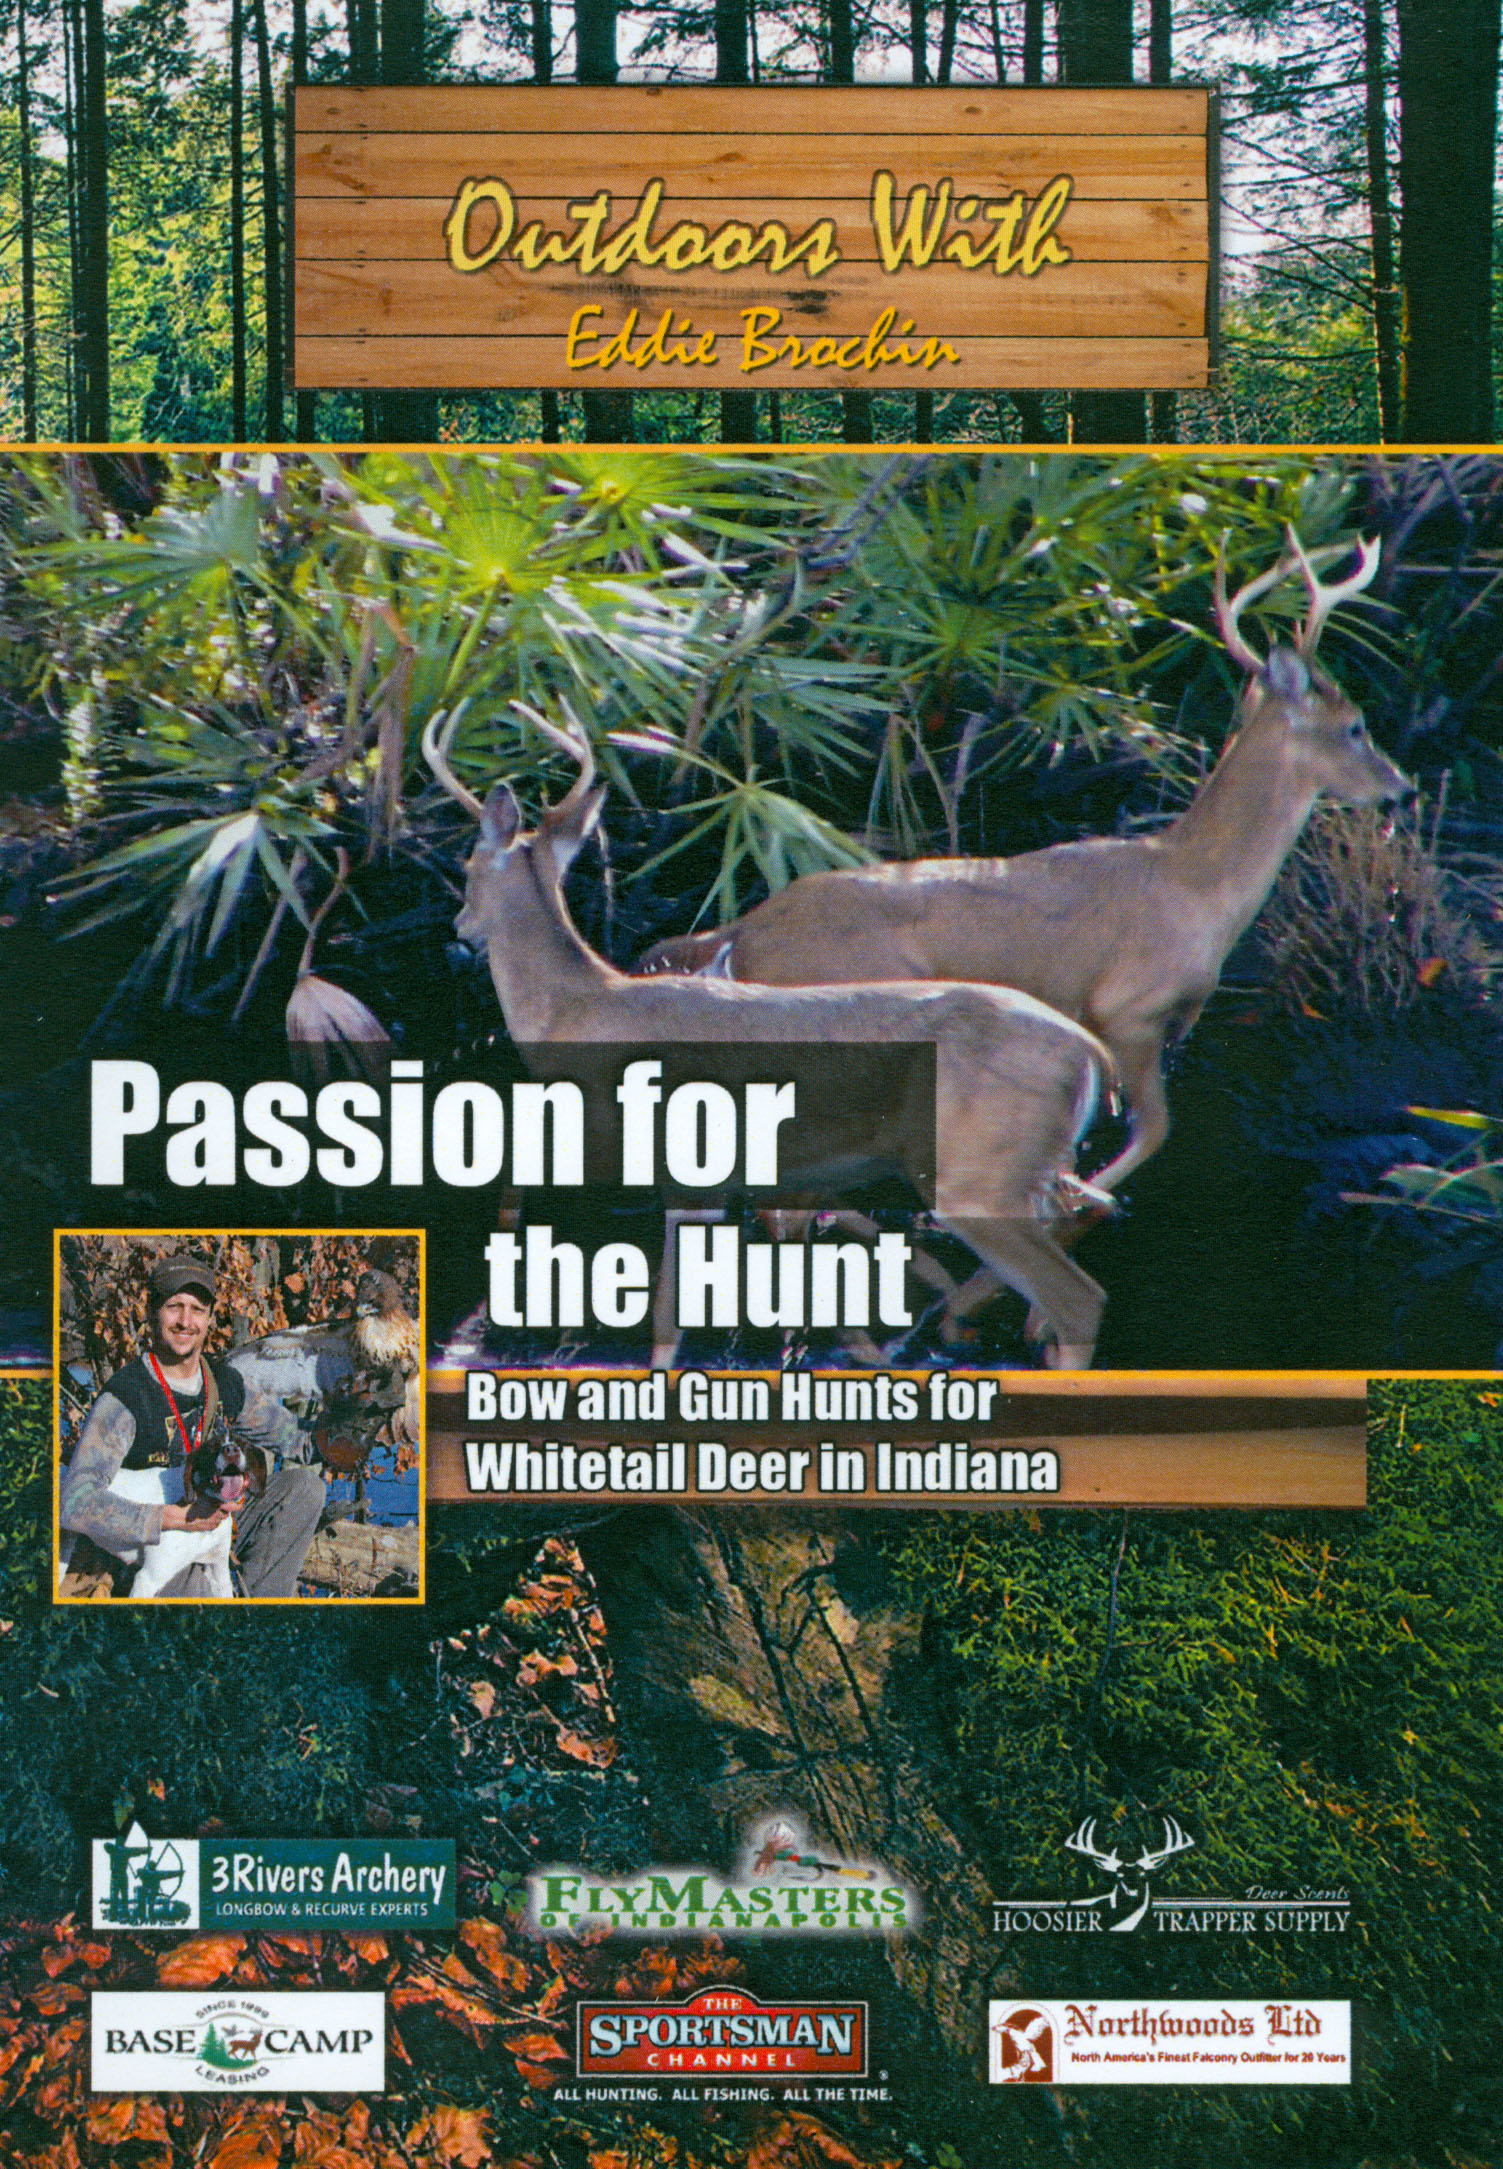 Outdoors With Eddie Brochin: Passion For the Hunt